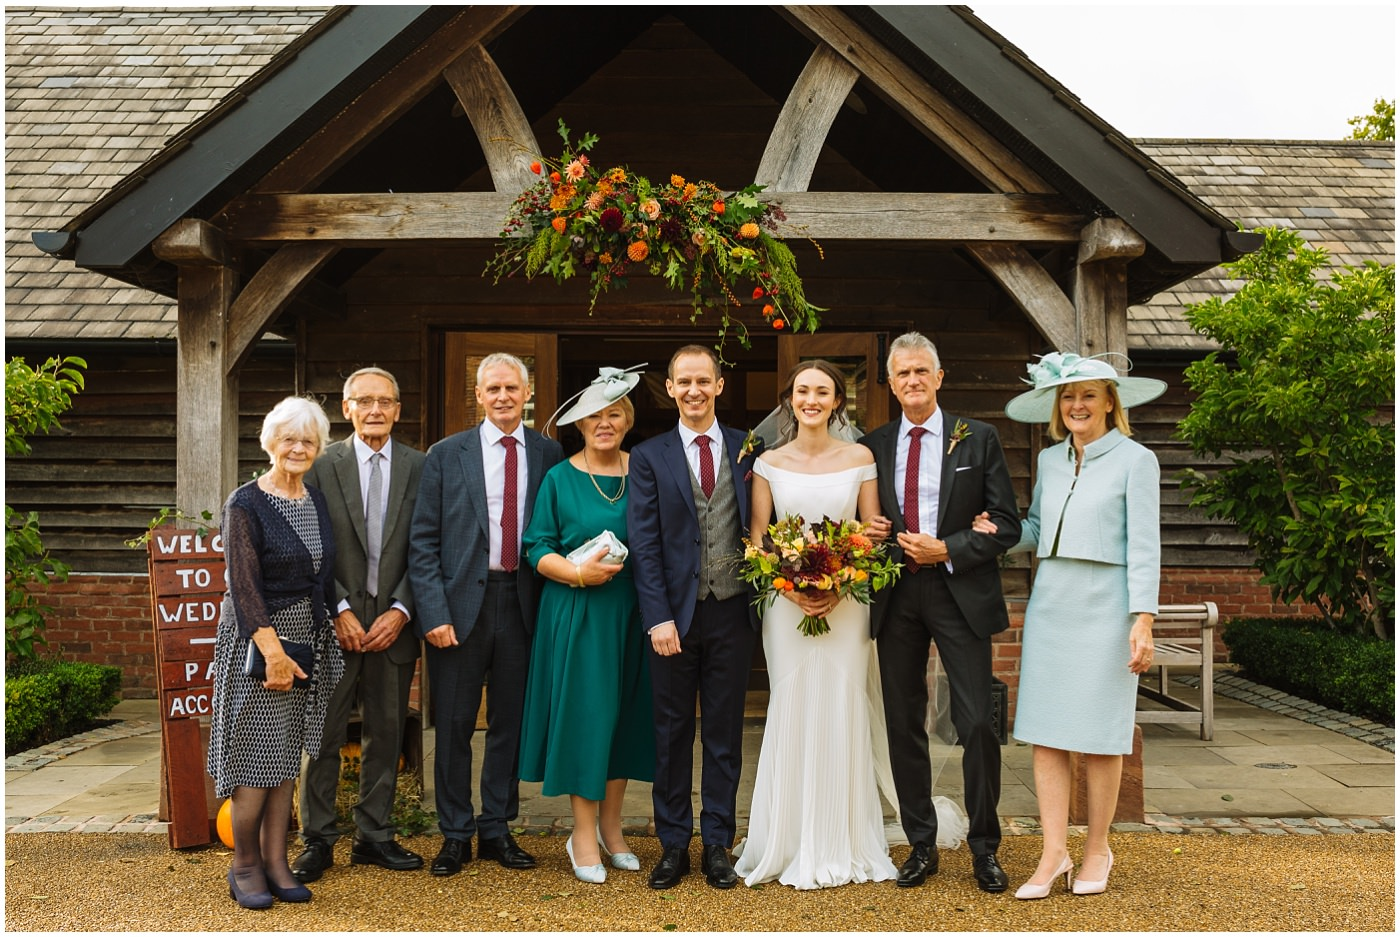 Formal family photograph outside Sandhole Oak barn